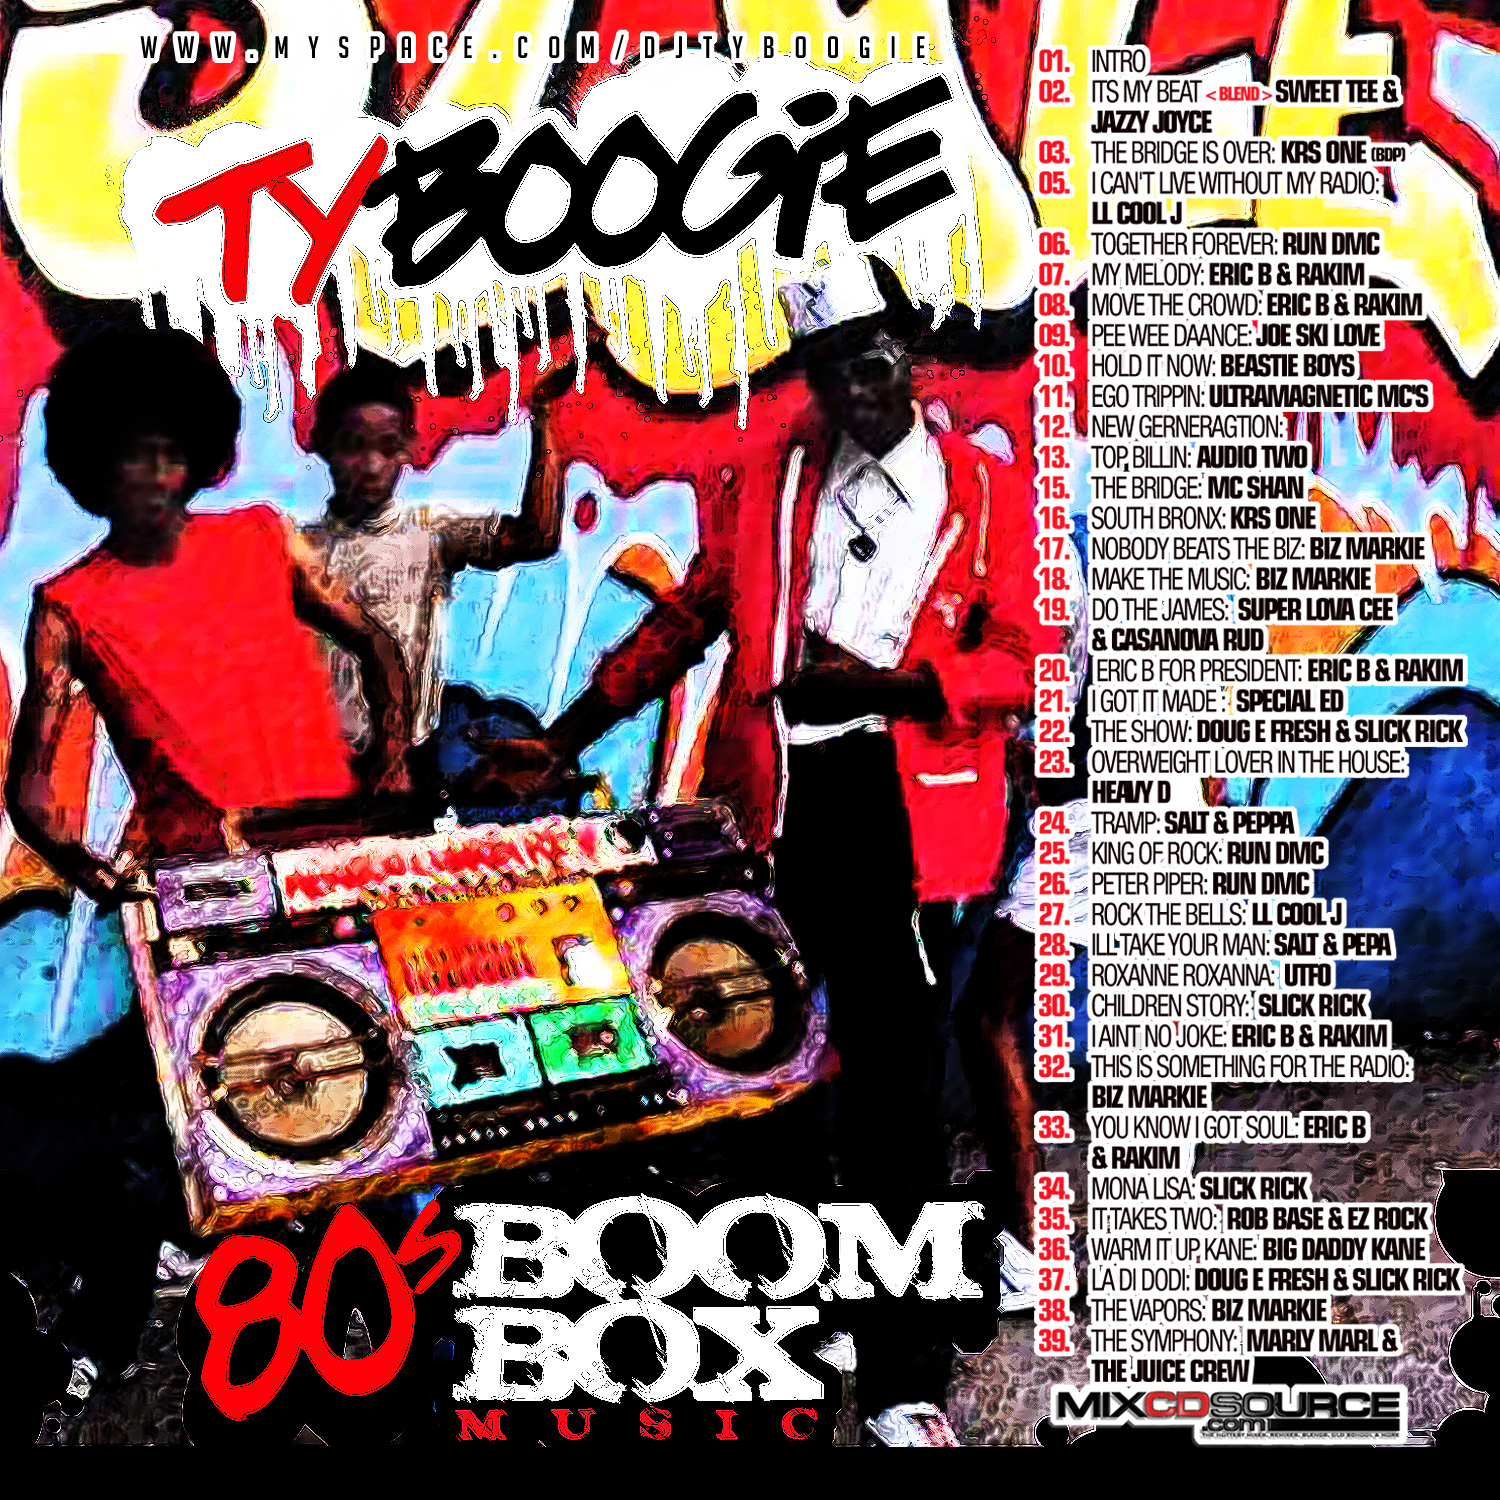 80 s boom box music dj ty boogie for Classic house music mixtapes